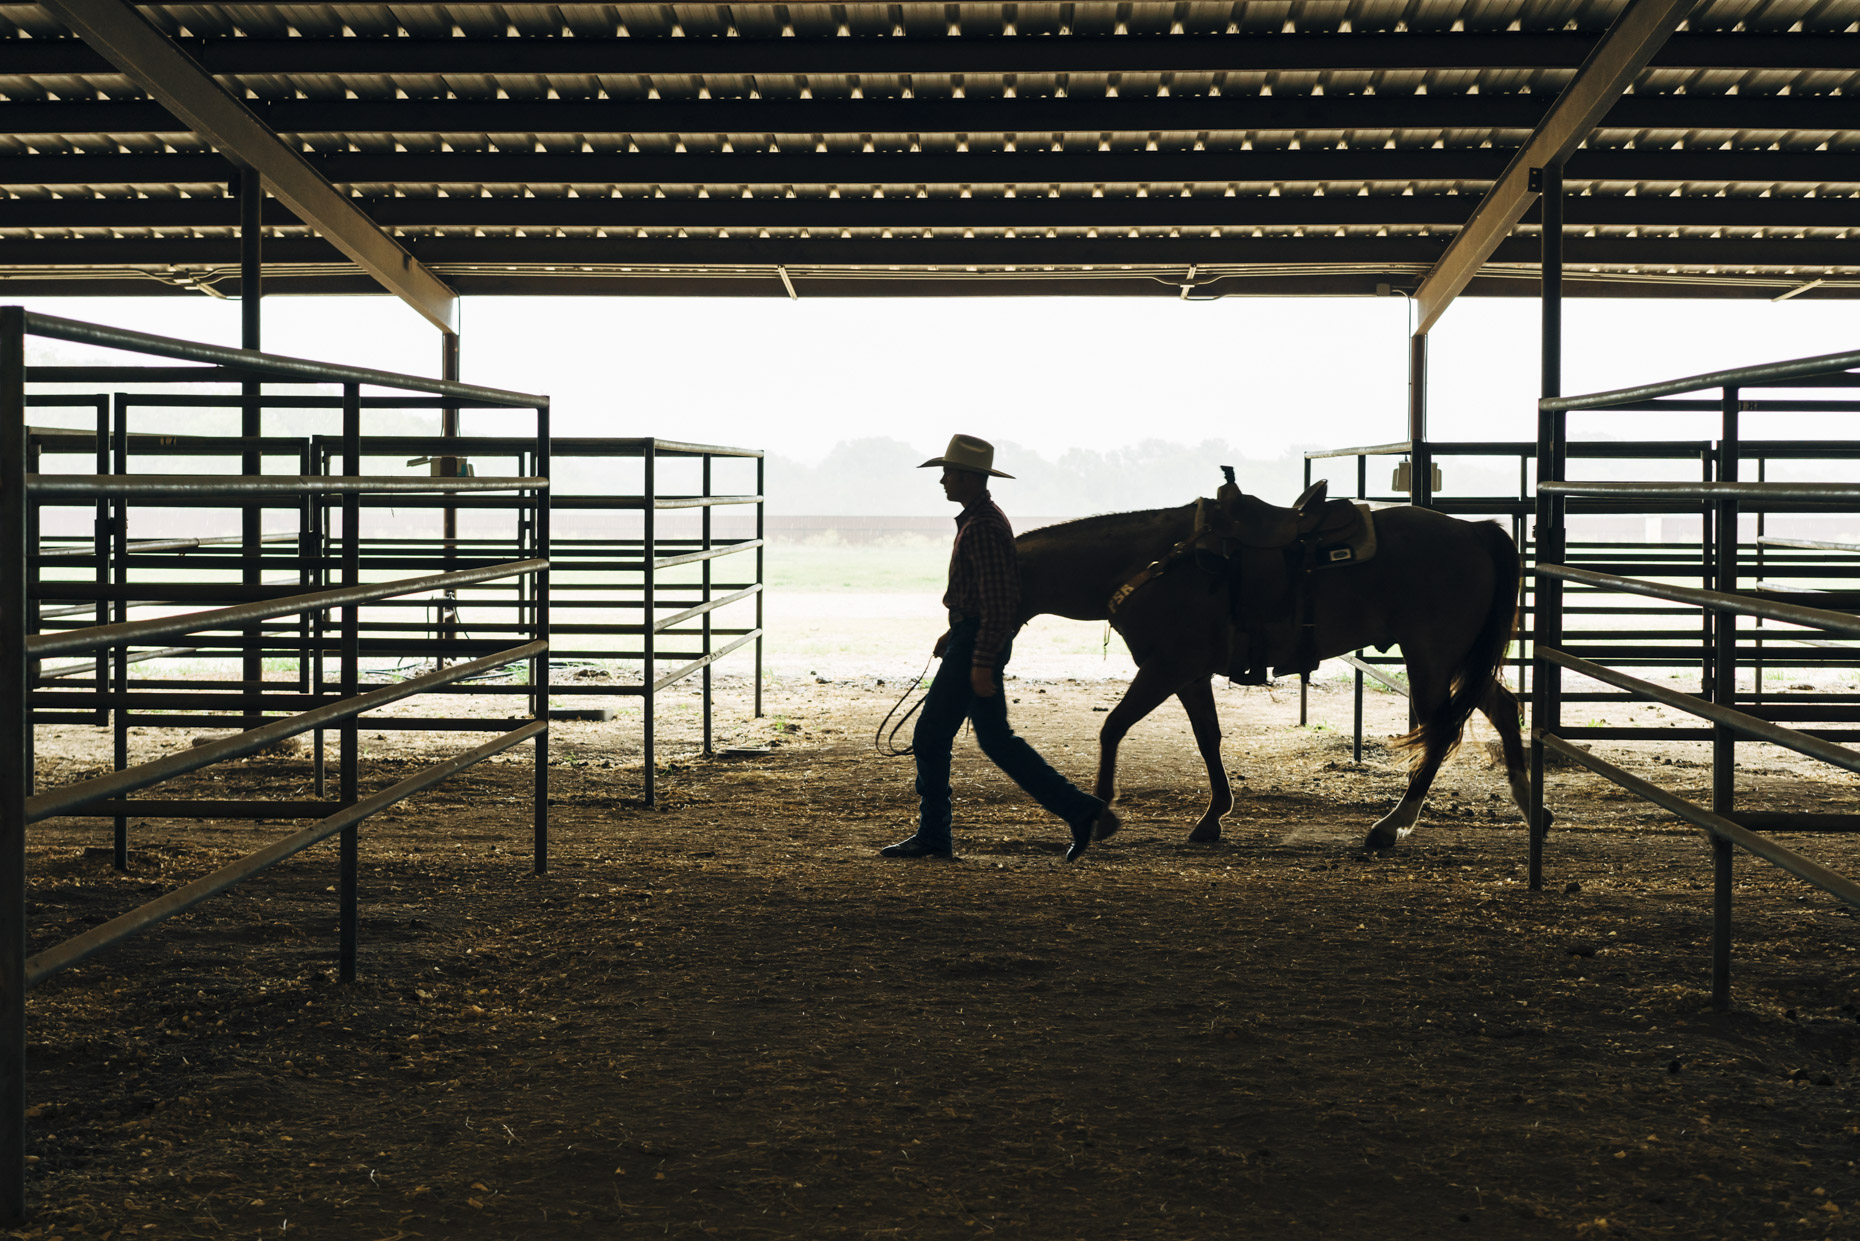 Silhouette of man in cowboy hat walking with horse through stable